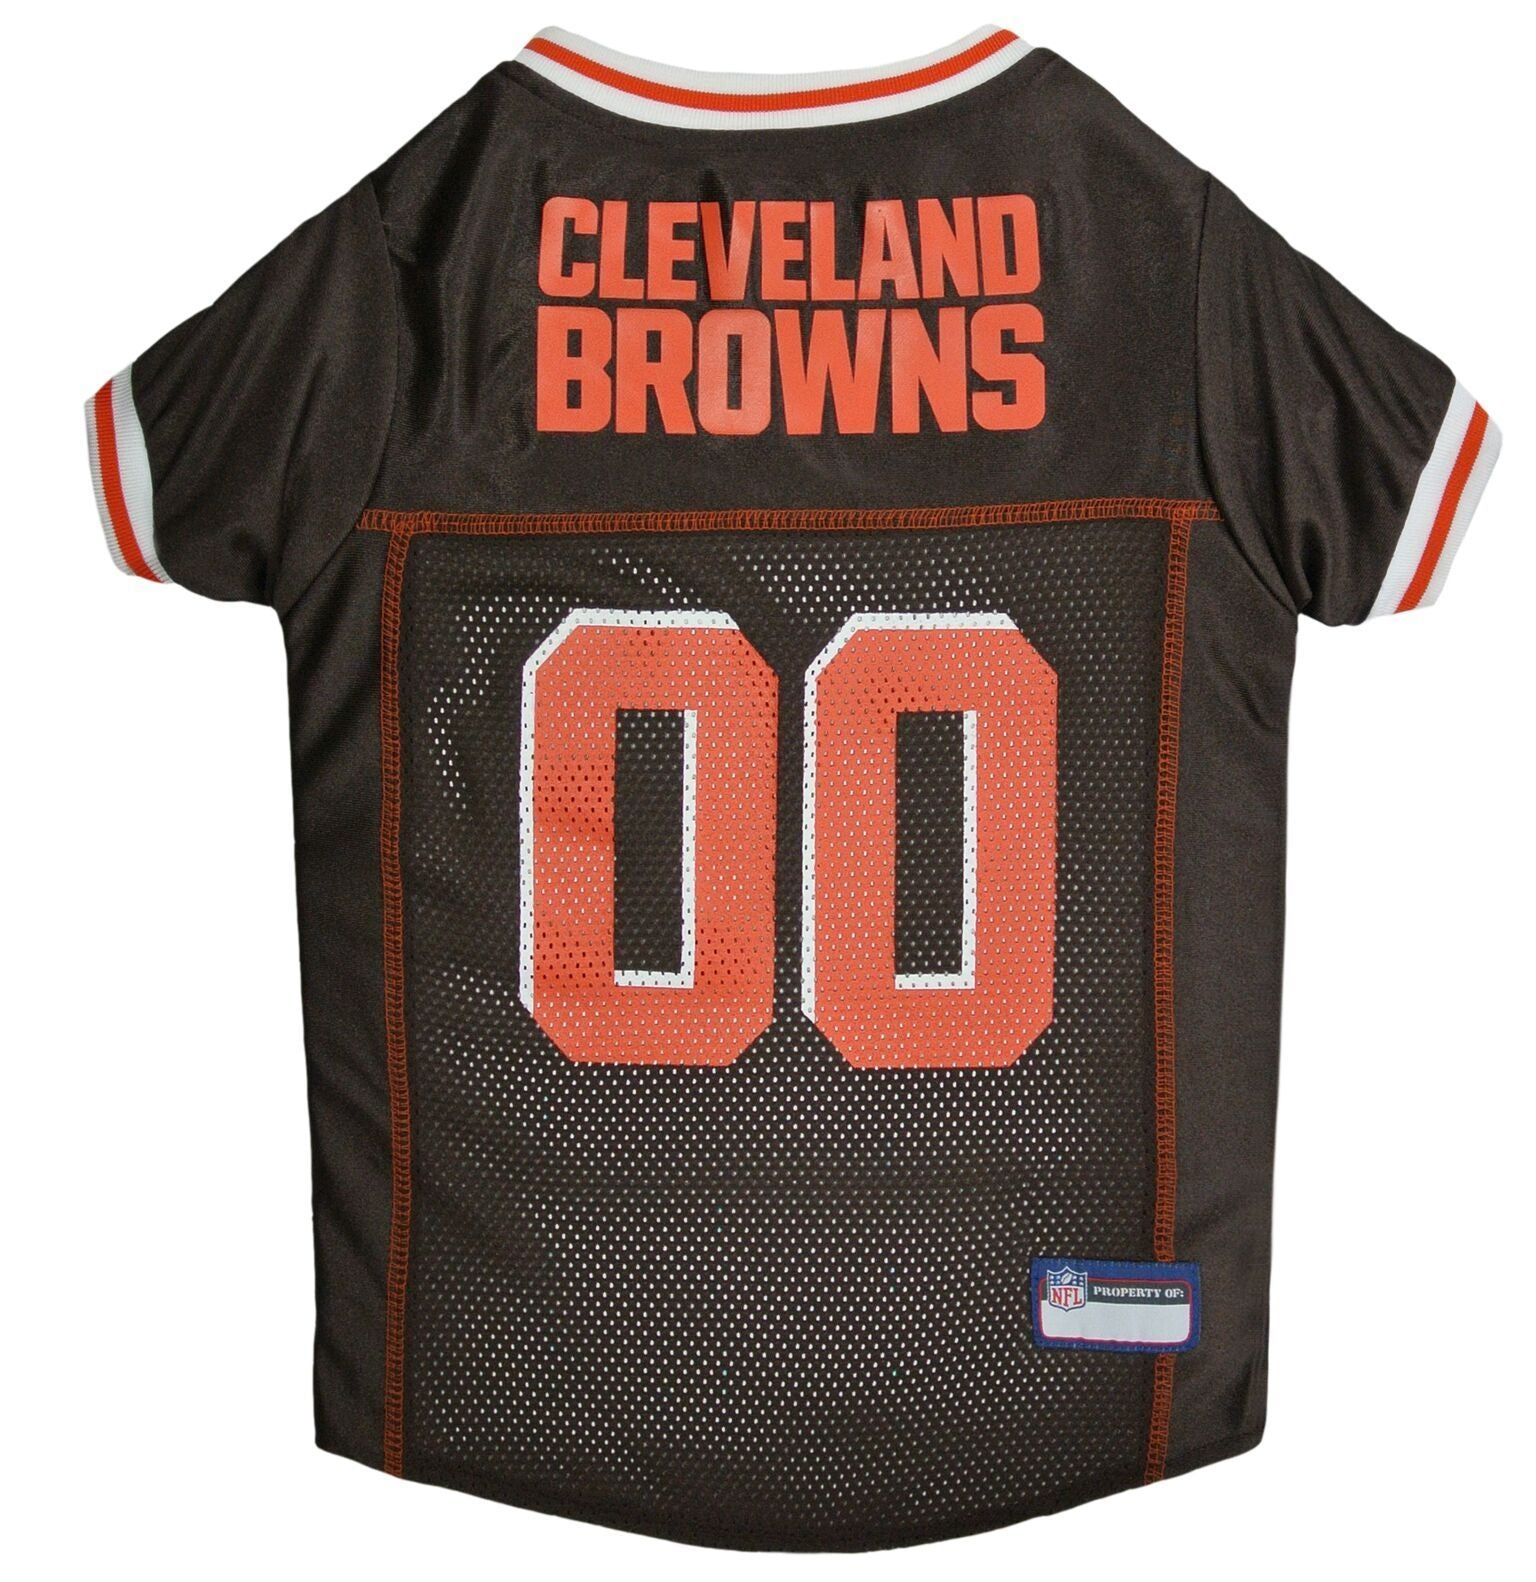 Discount Cleveland Browns Puppy Dog Football Jersey Cheerleading Uniform  hot sale